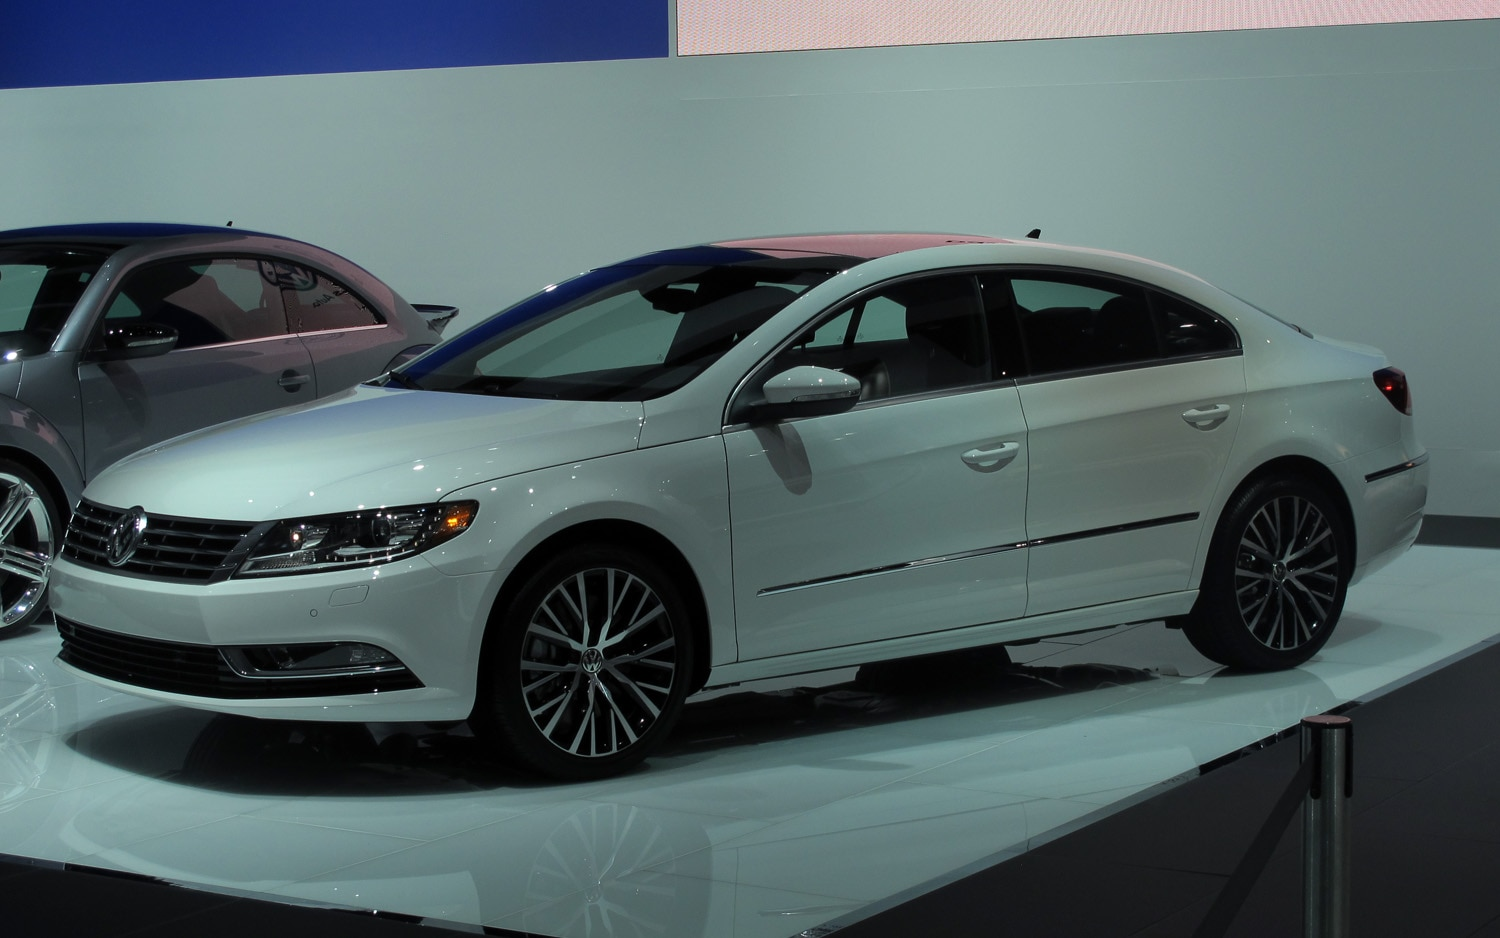 2013 Volkswagen CC Front Three Quarters View Live1